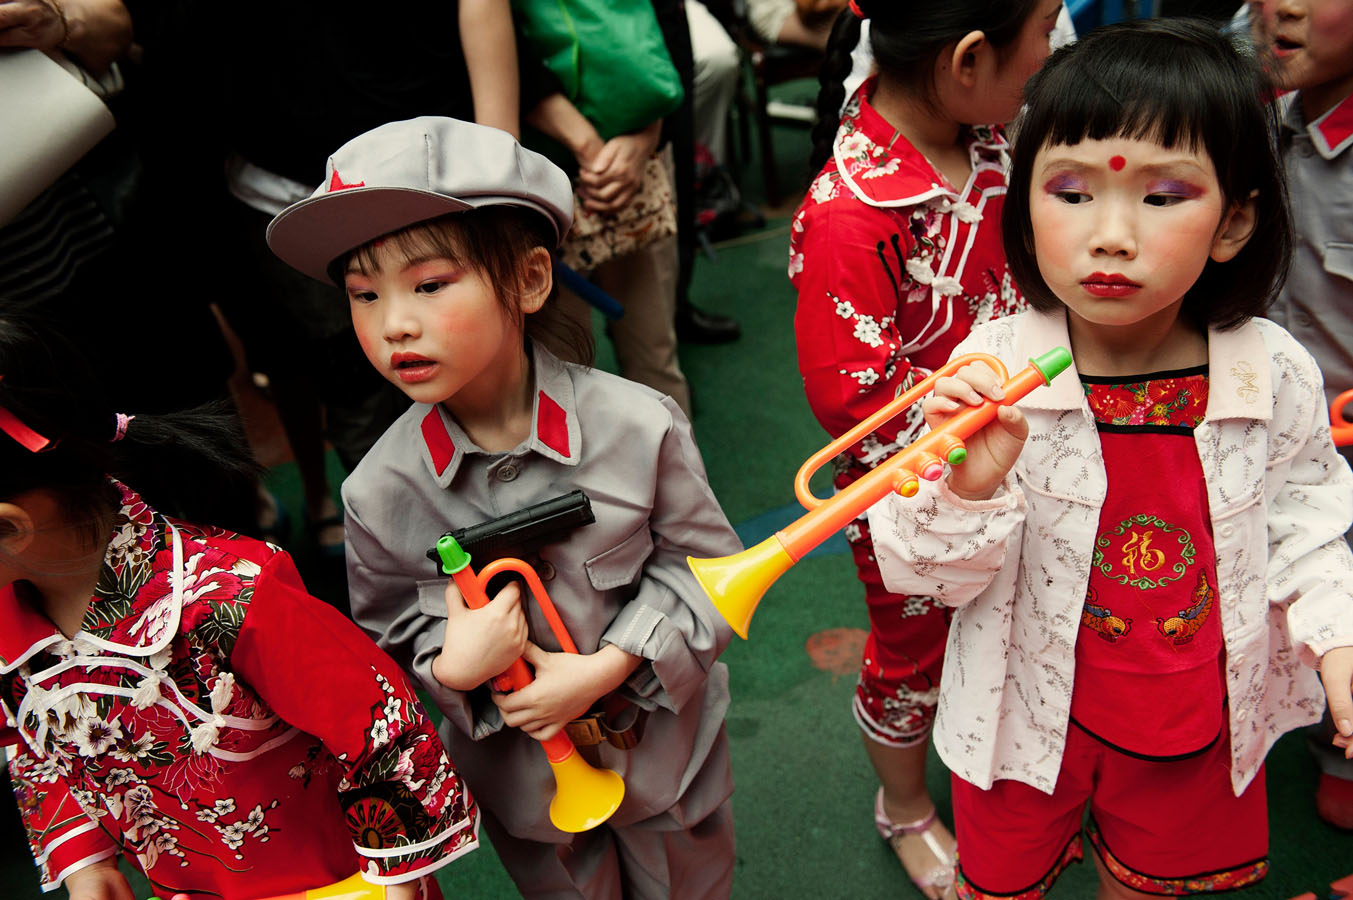 At Dadi kindergarten in Chongqing, children before a show for Children's day. One of them dressed up as a PLA soldiers is holding a plastic gun. The show includes a revolutionary piece: the story of Wang Erxiao a kid who sacrifices himself to lead the 8 route army to victory against the Japanese.